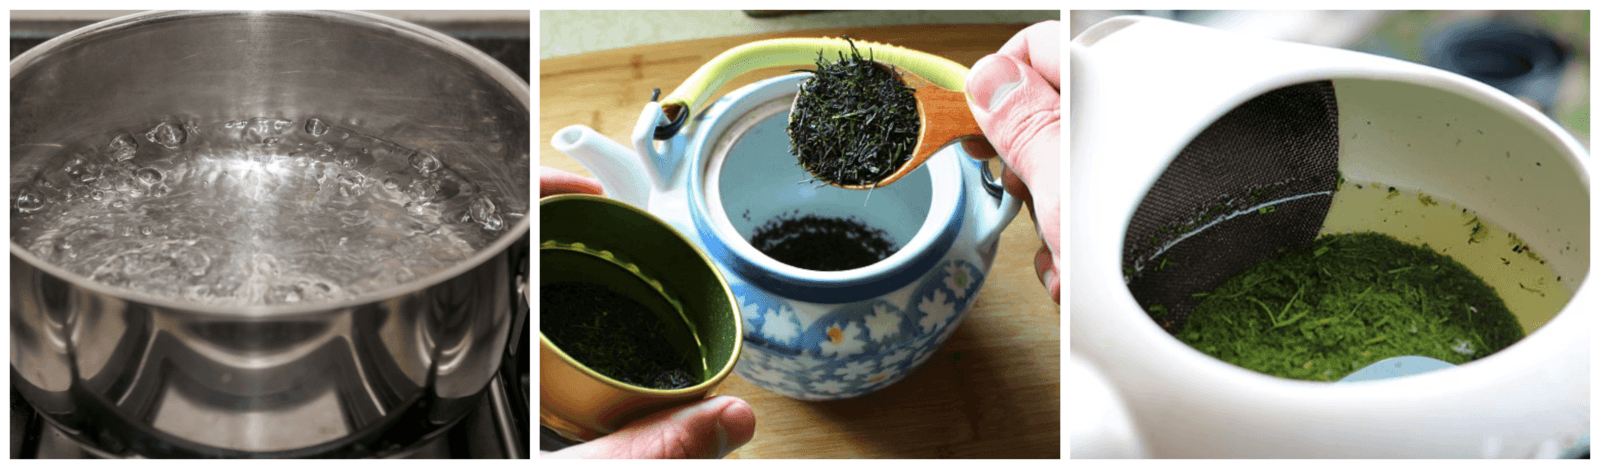 how to rinse the tea steps